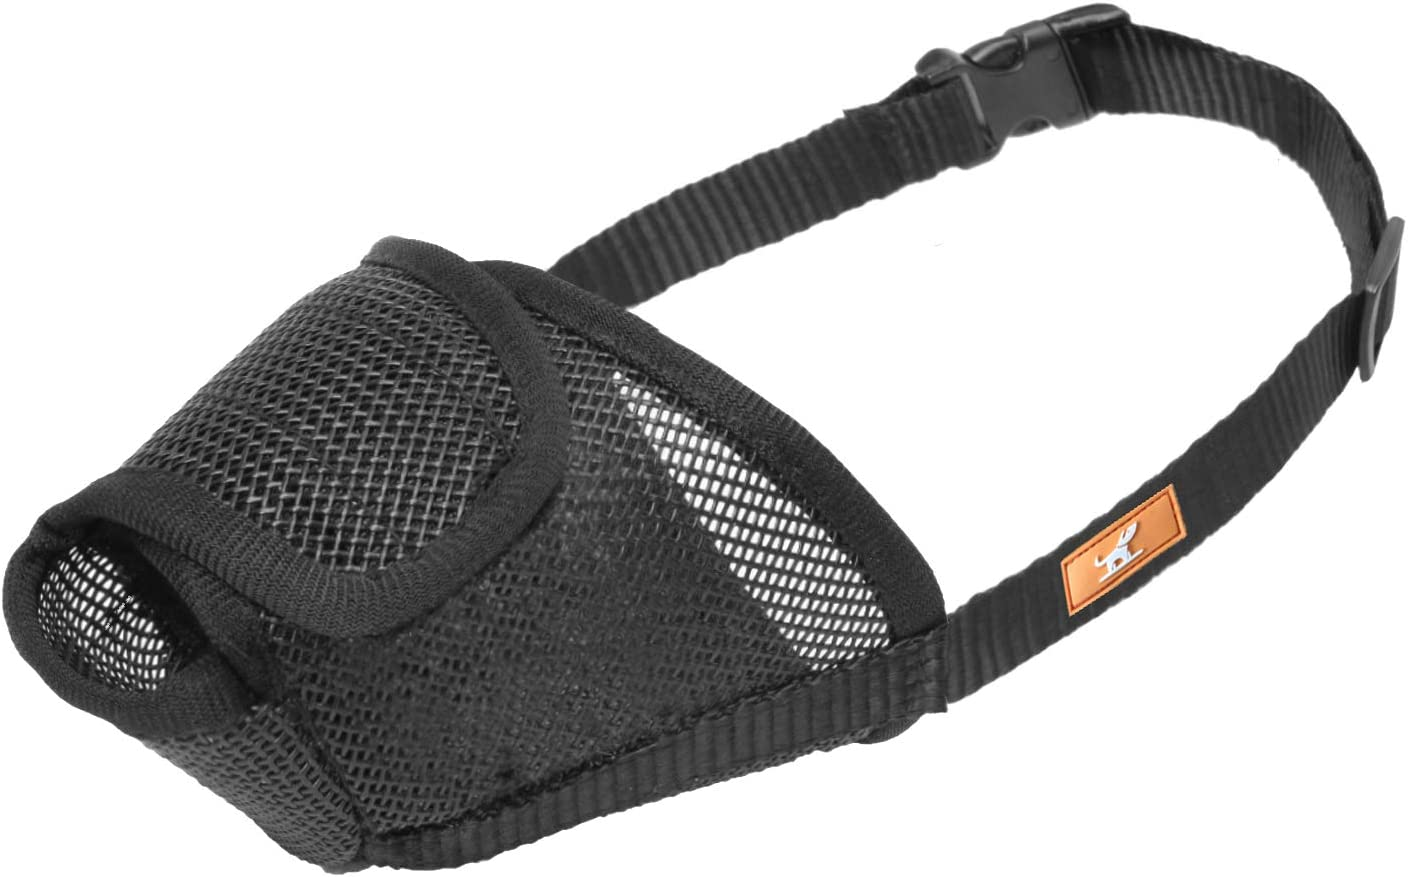 Dog Muzzle Mesh with Max 76% OFF Overhead Mouth Mask Strap Breathable Guard Virginia Beach Mall